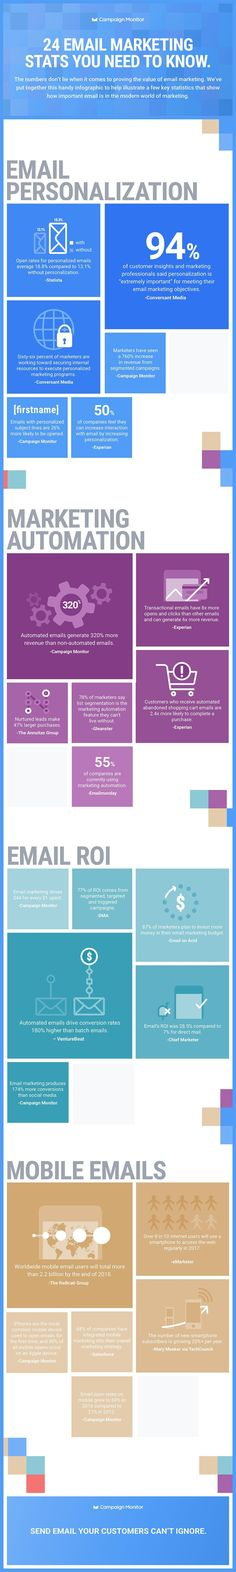 24 Email Marketing Stats to Guide Your 2018 Strategy [Infographic] #internetmarketingstrategy